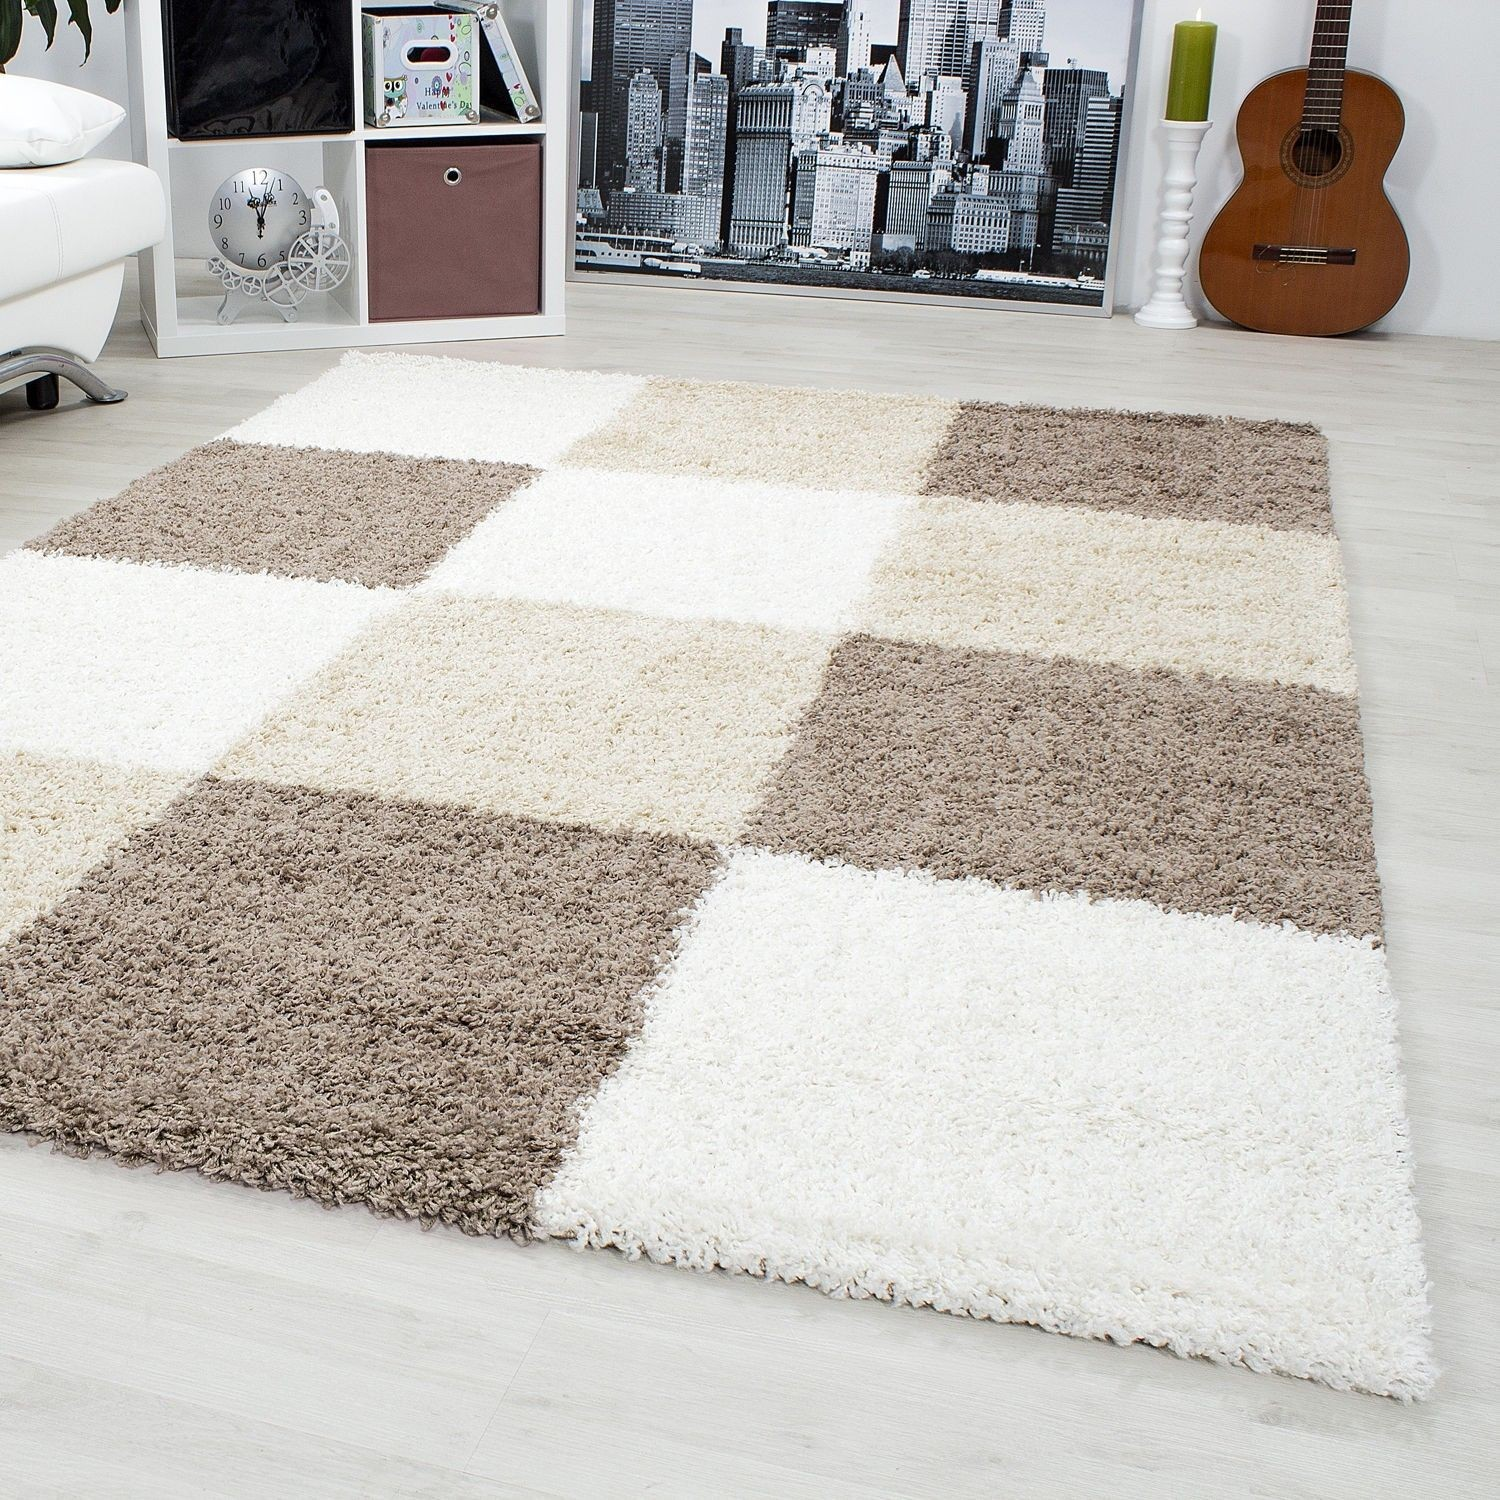 tapis shaggy longues m ches brun beige cream hautes carreaux pas cher. Black Bedroom Furniture Sets. Home Design Ideas